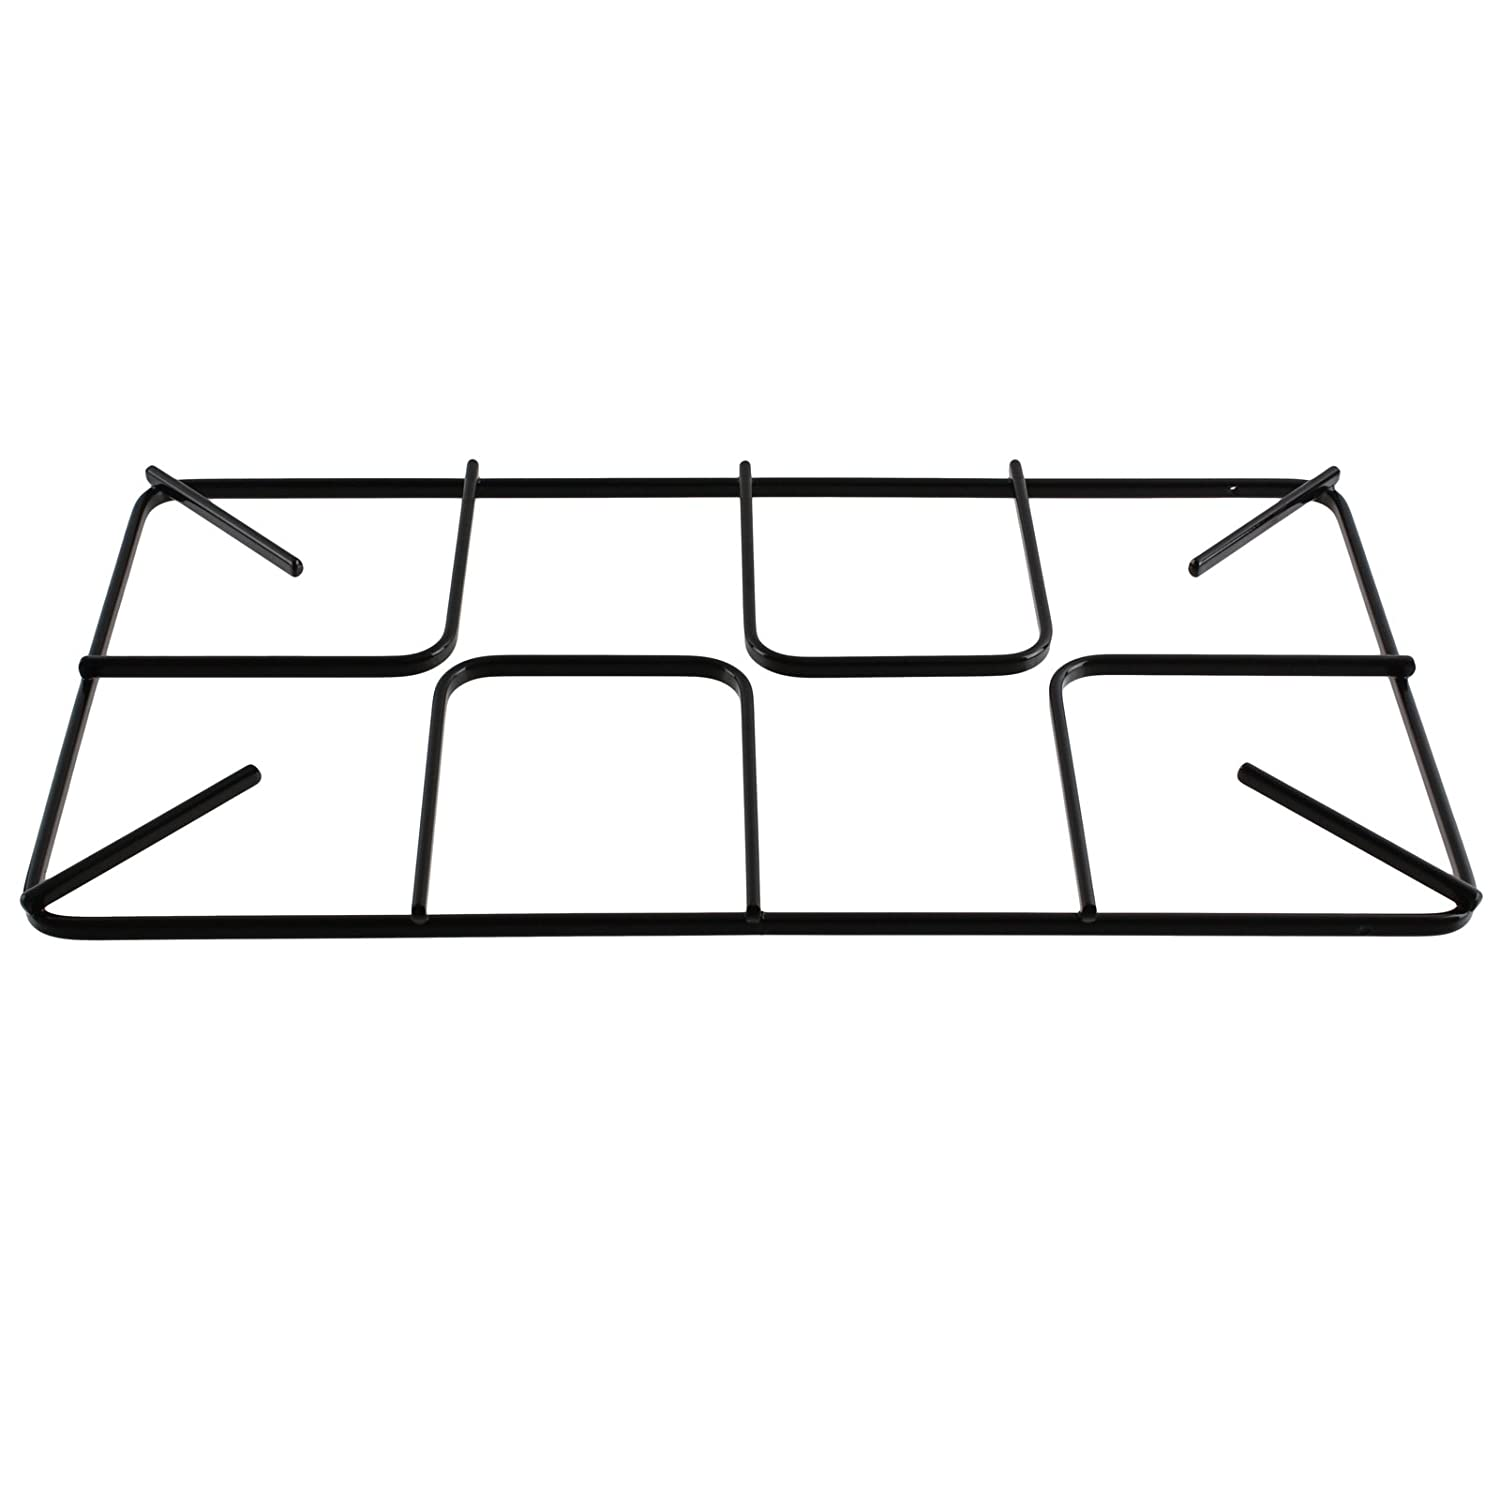 SPARES2GO Pan Support Grid for Moffat Oven Cooker Flat Gas Hob (450mm x 245mm, Large)